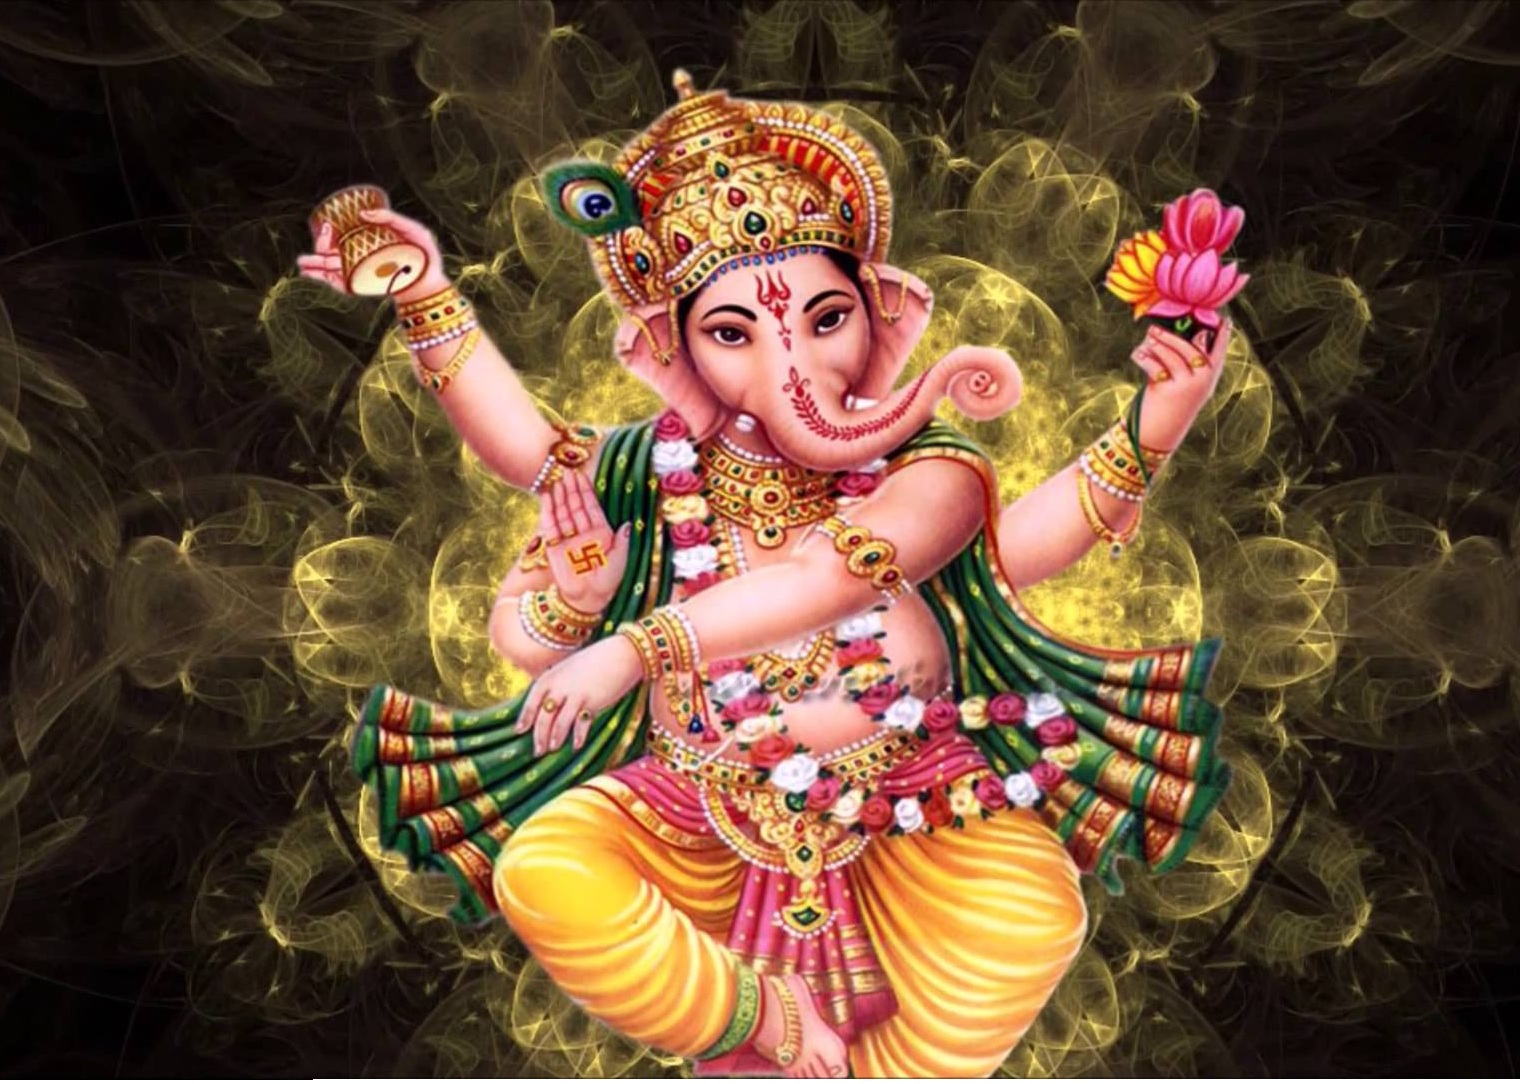 Lord Ganesha Photos: Lord/Bhagwan Ganesh Images, Wallpapers, Pictures, Photos